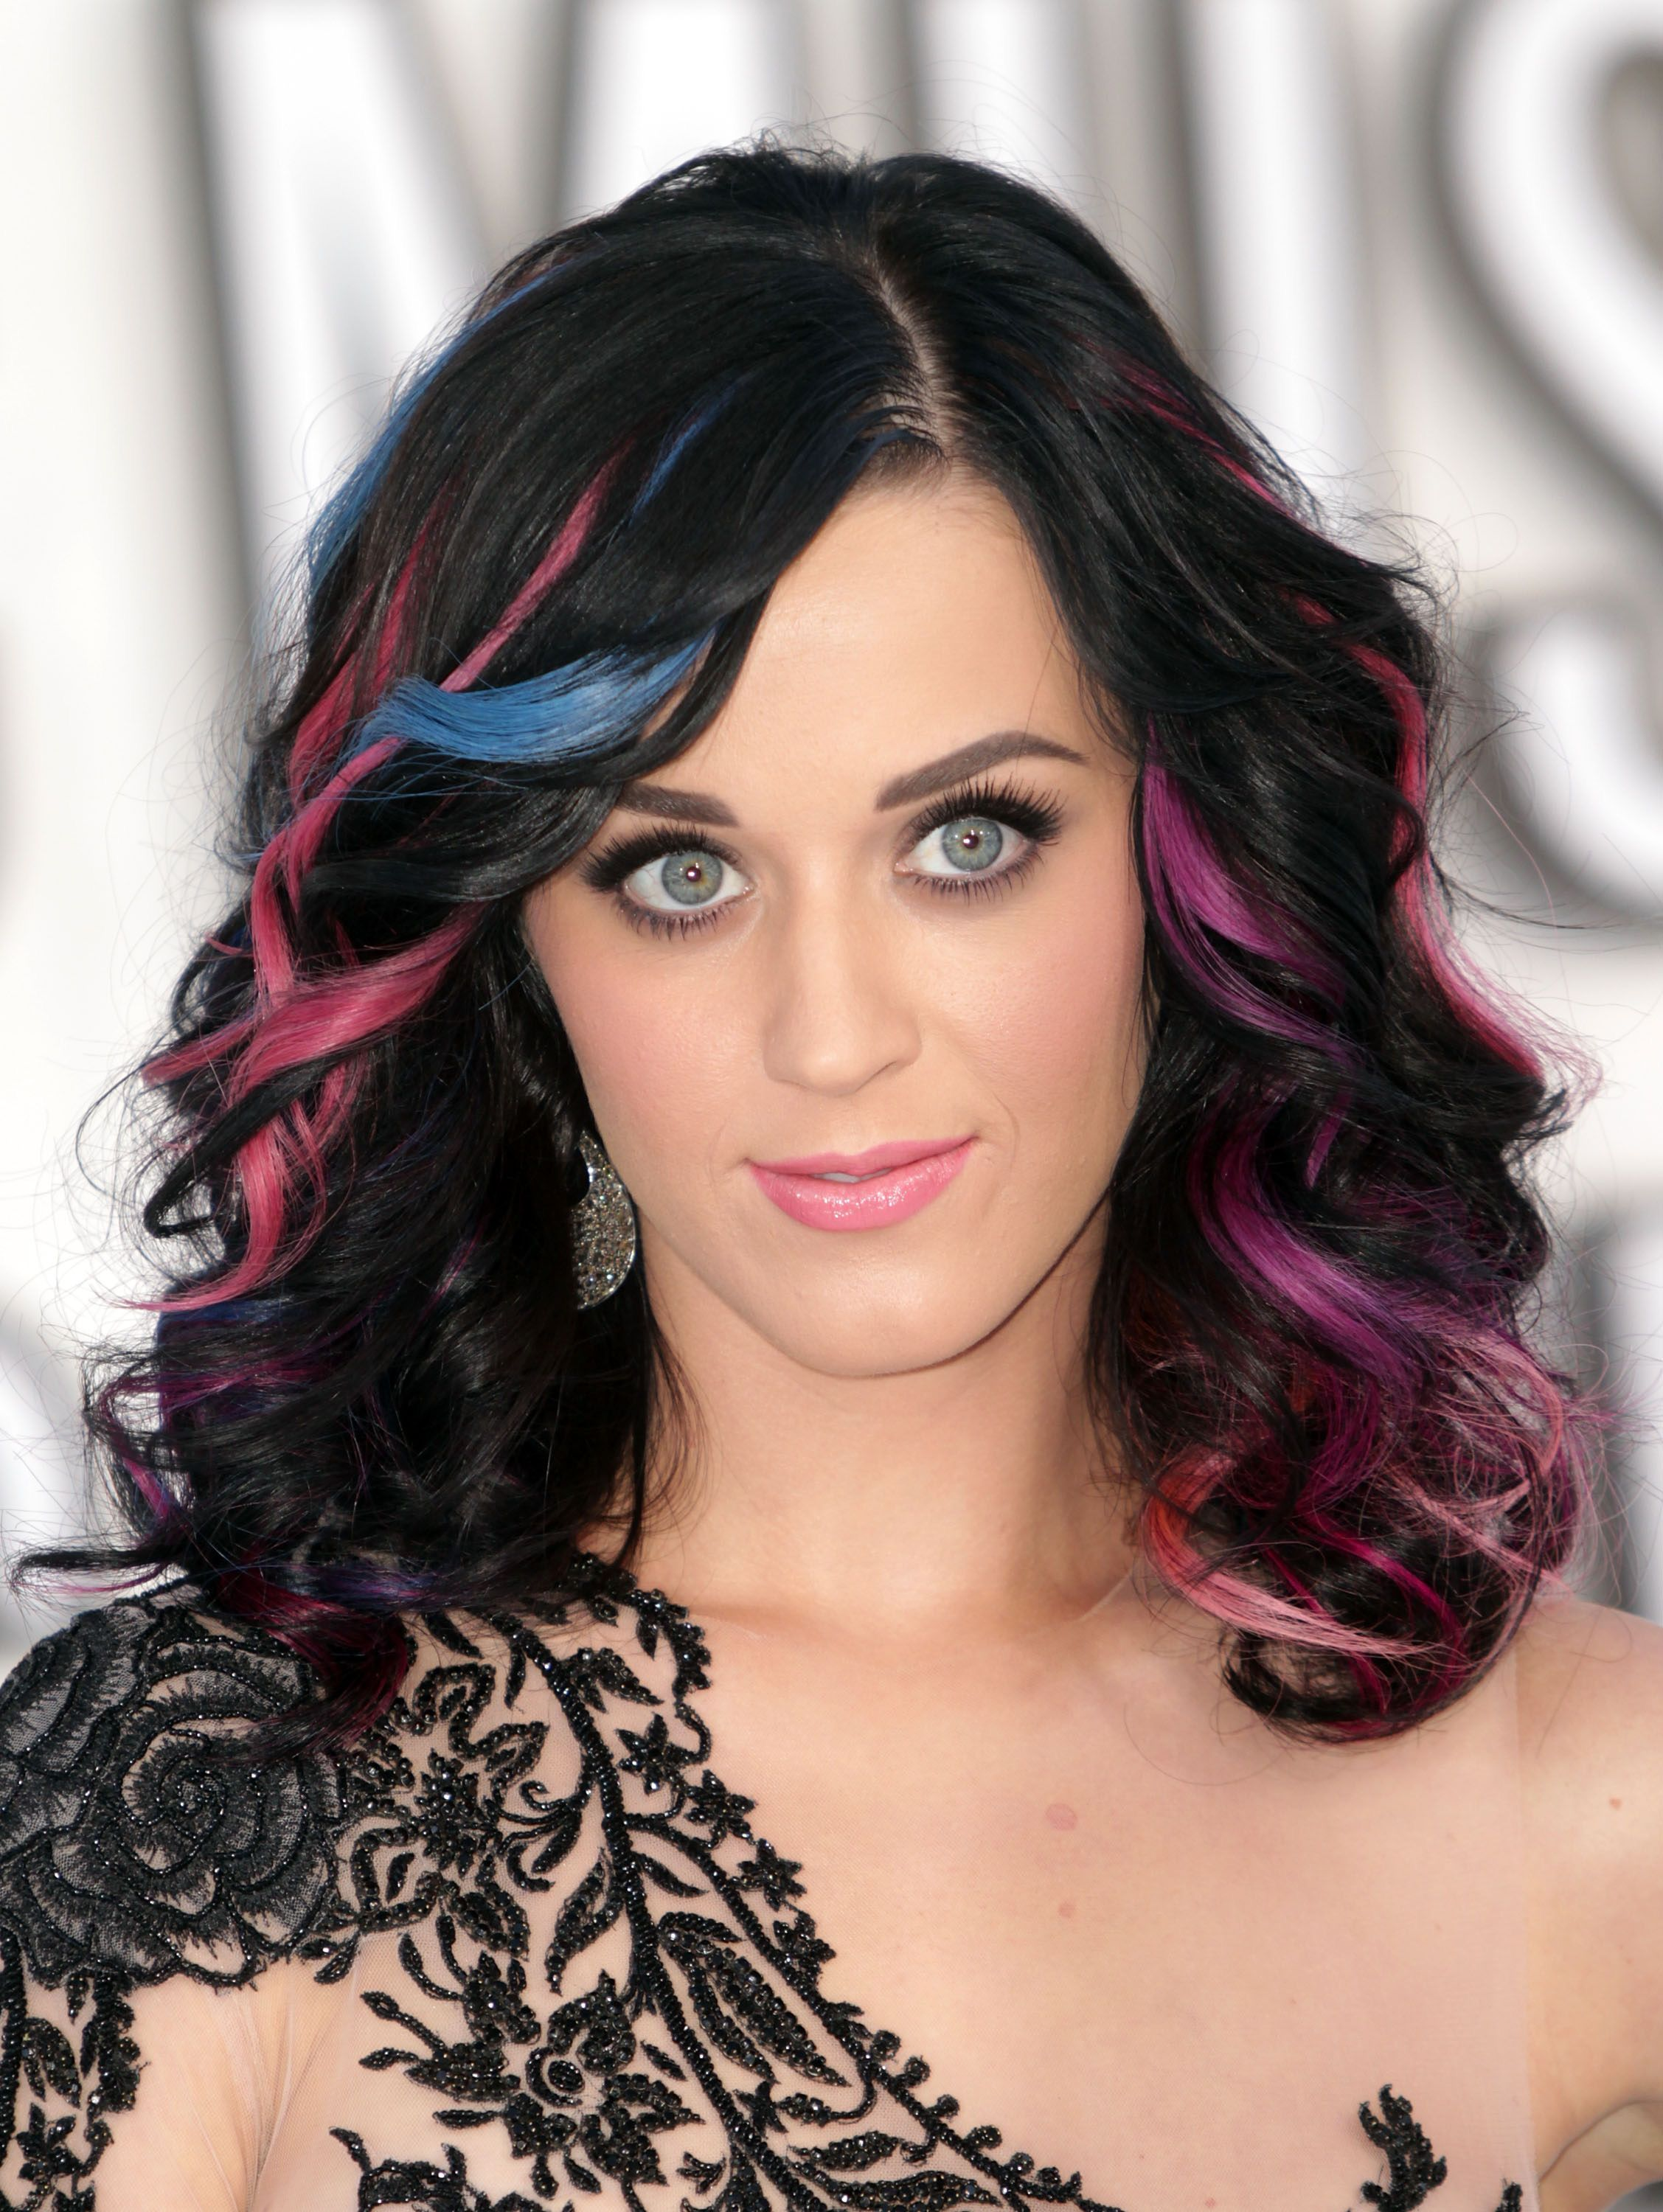 Super Bowl Prep The Evolution Of Katy Perry S Many Hairstyles